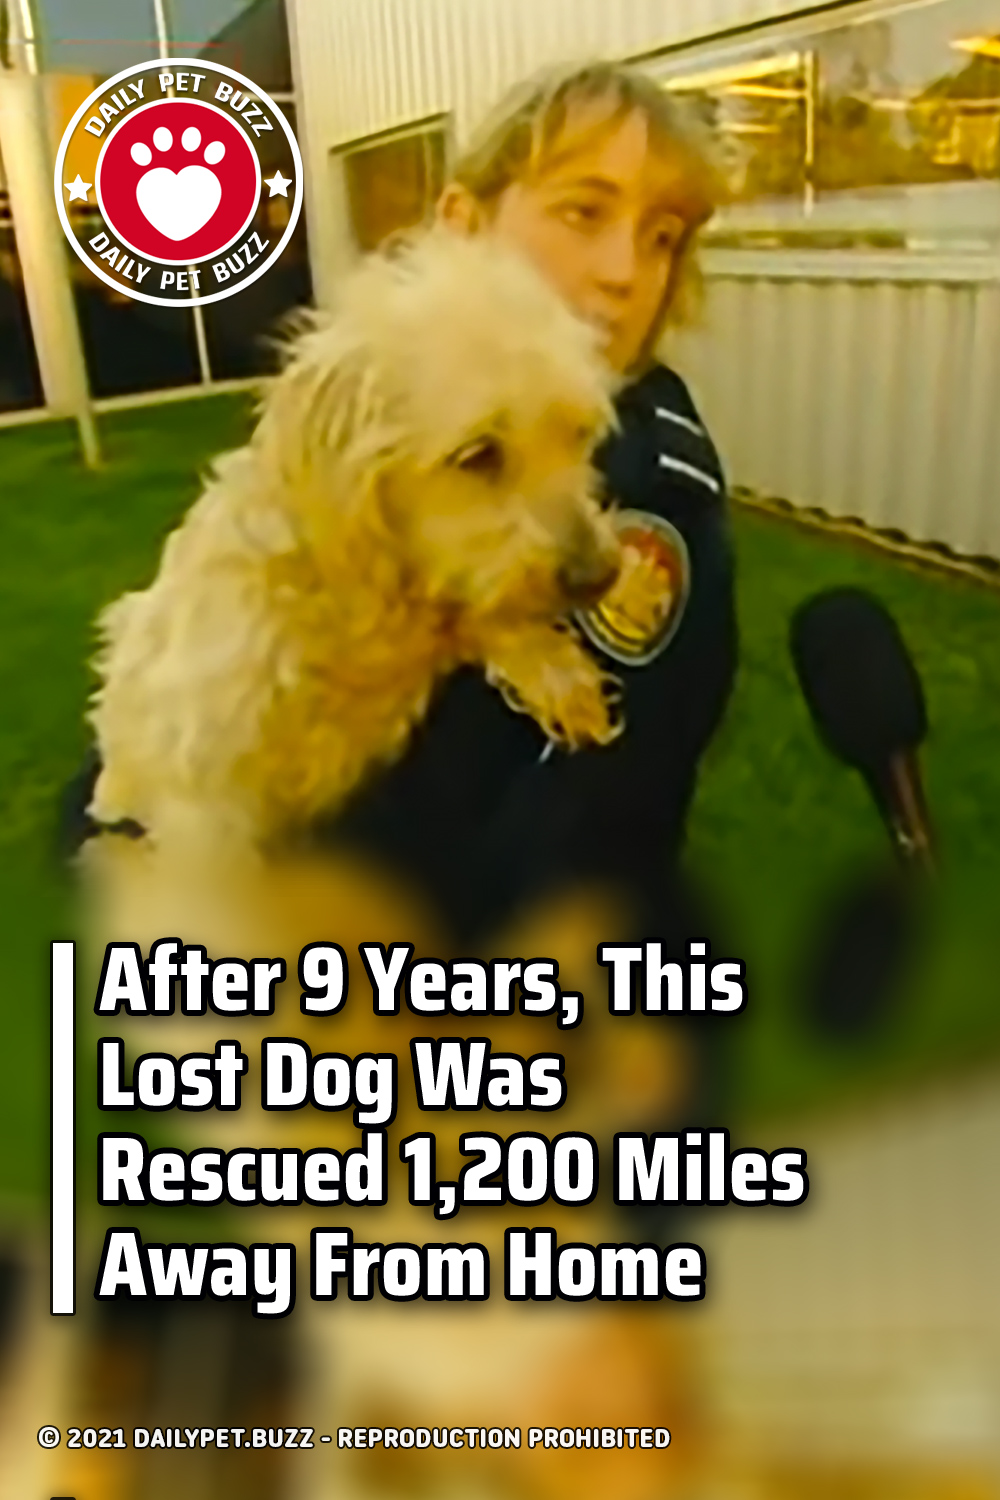 After 9 Years, This Lost Dog Was Rescued 1,200 Miles Away From Home